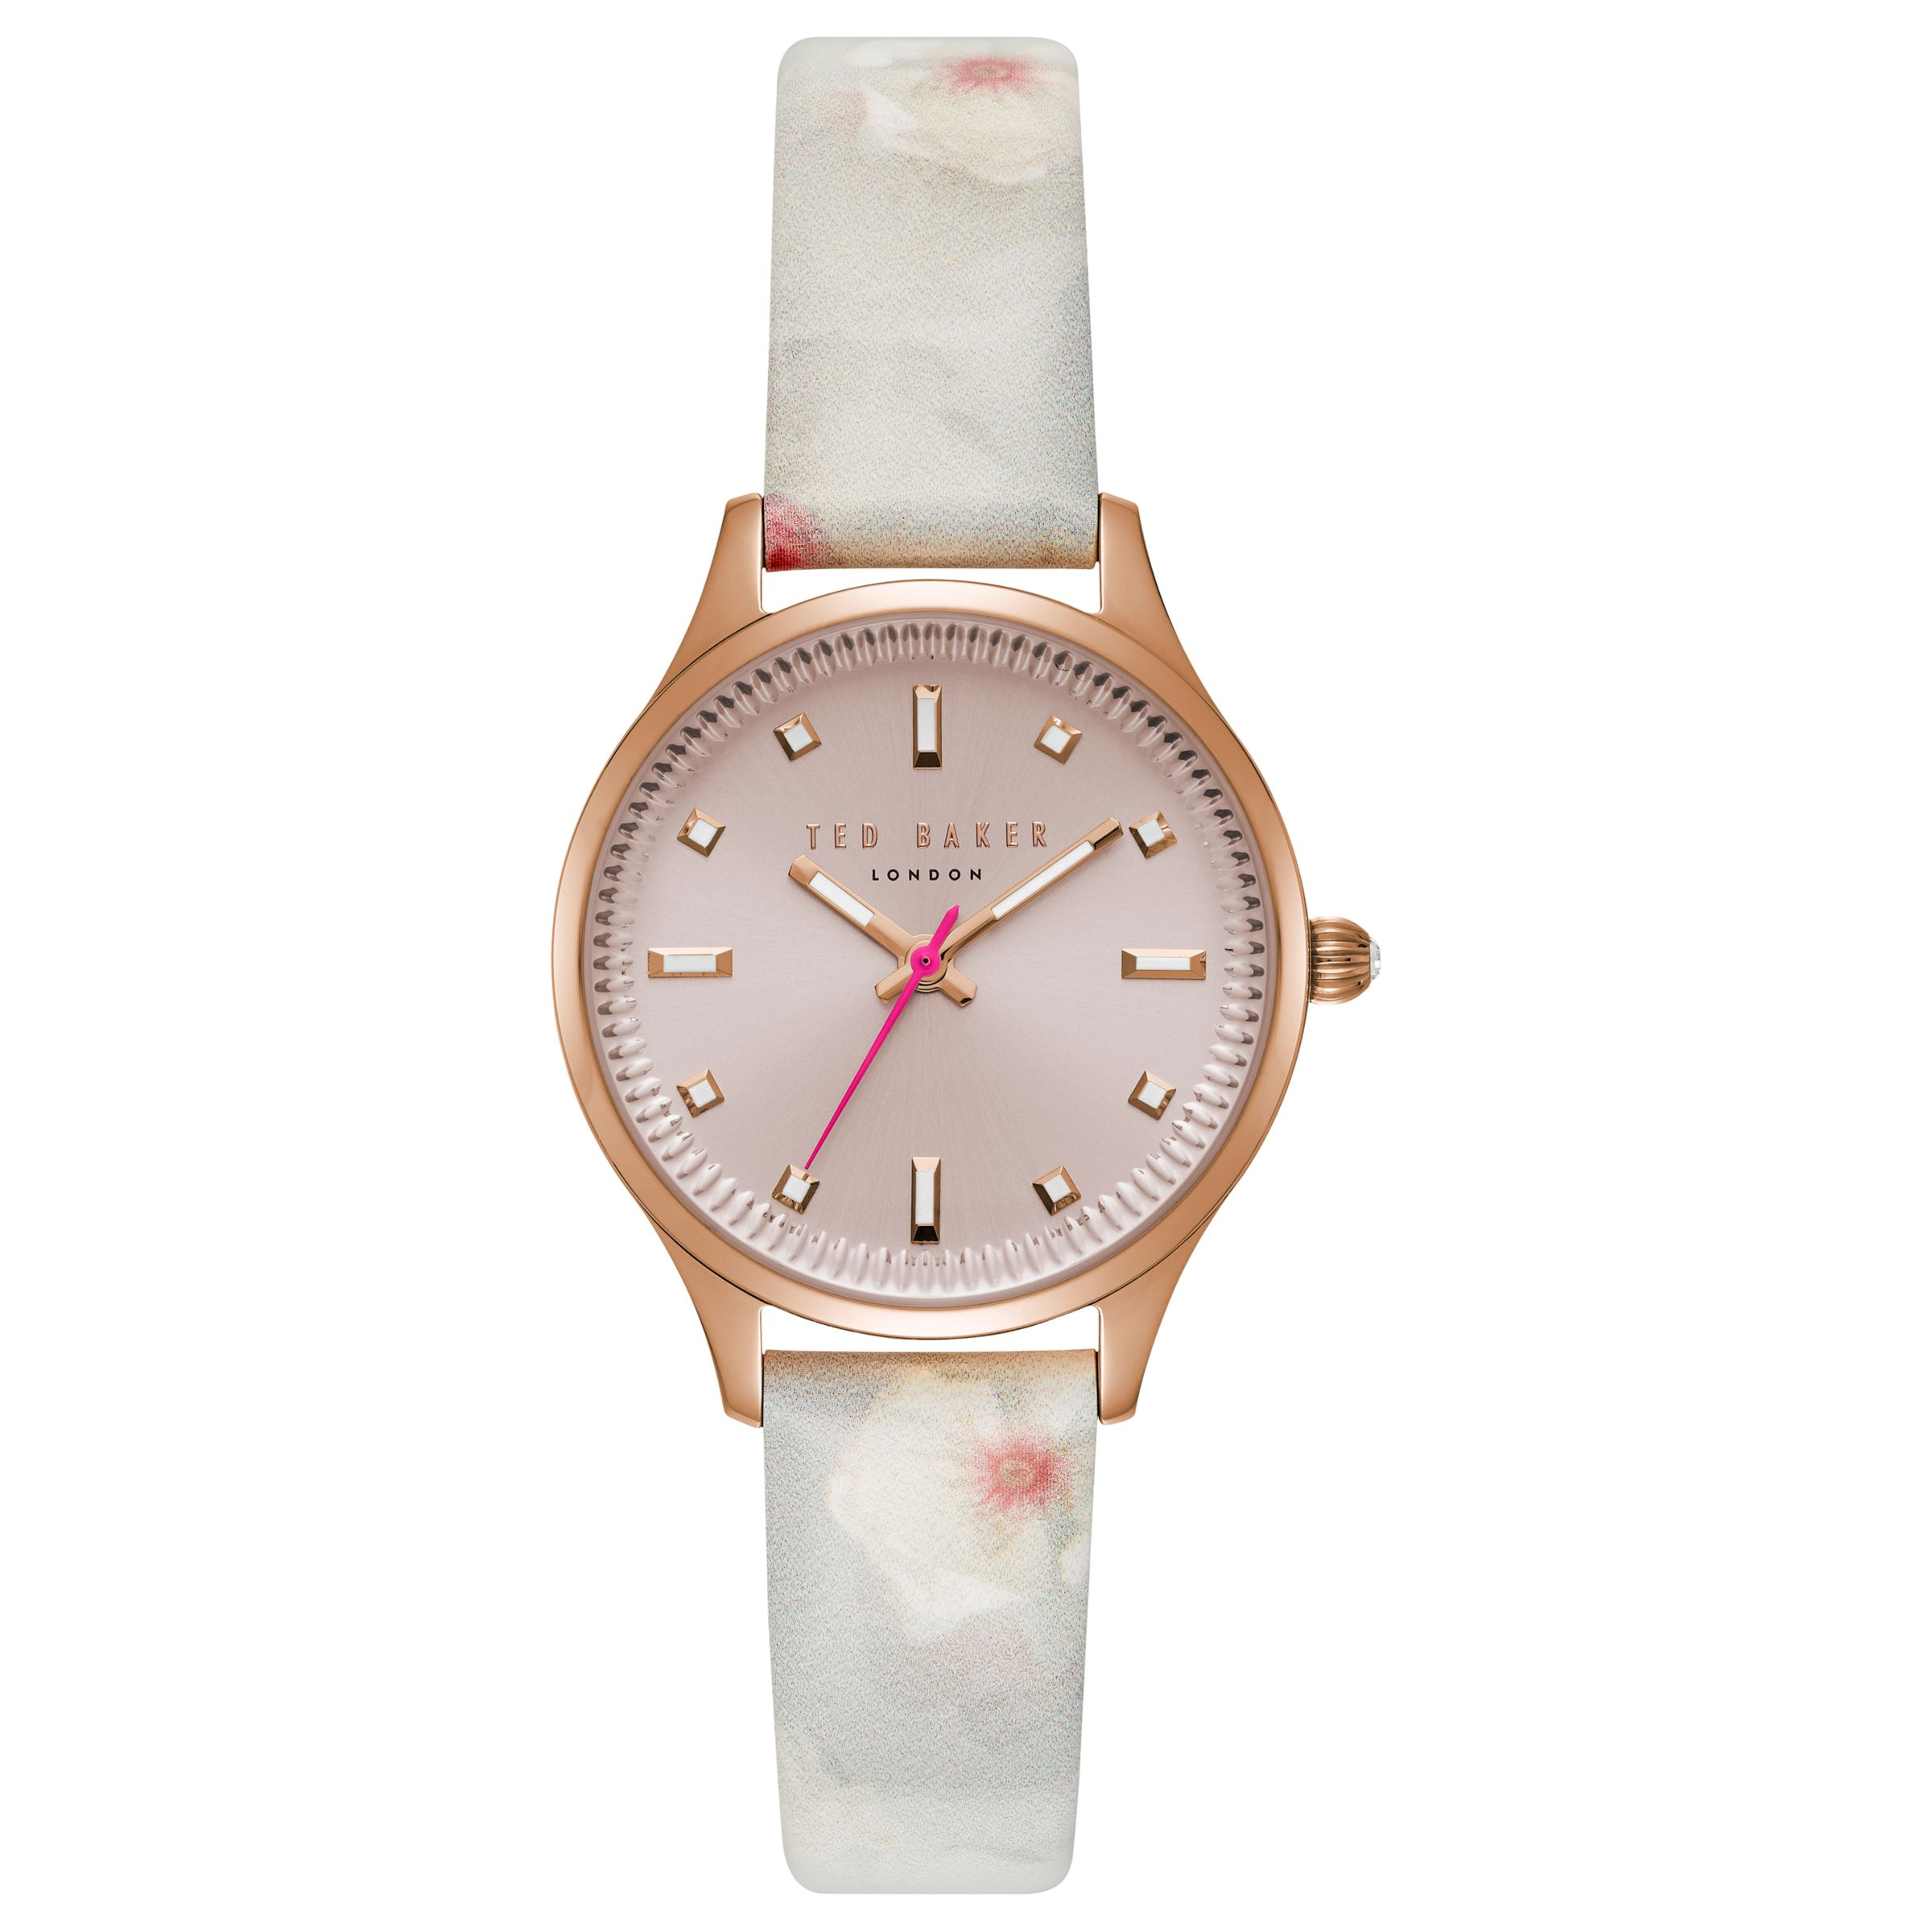 Ted Baker TE50001002 Women's Zoe Floral Leather Strap Watch